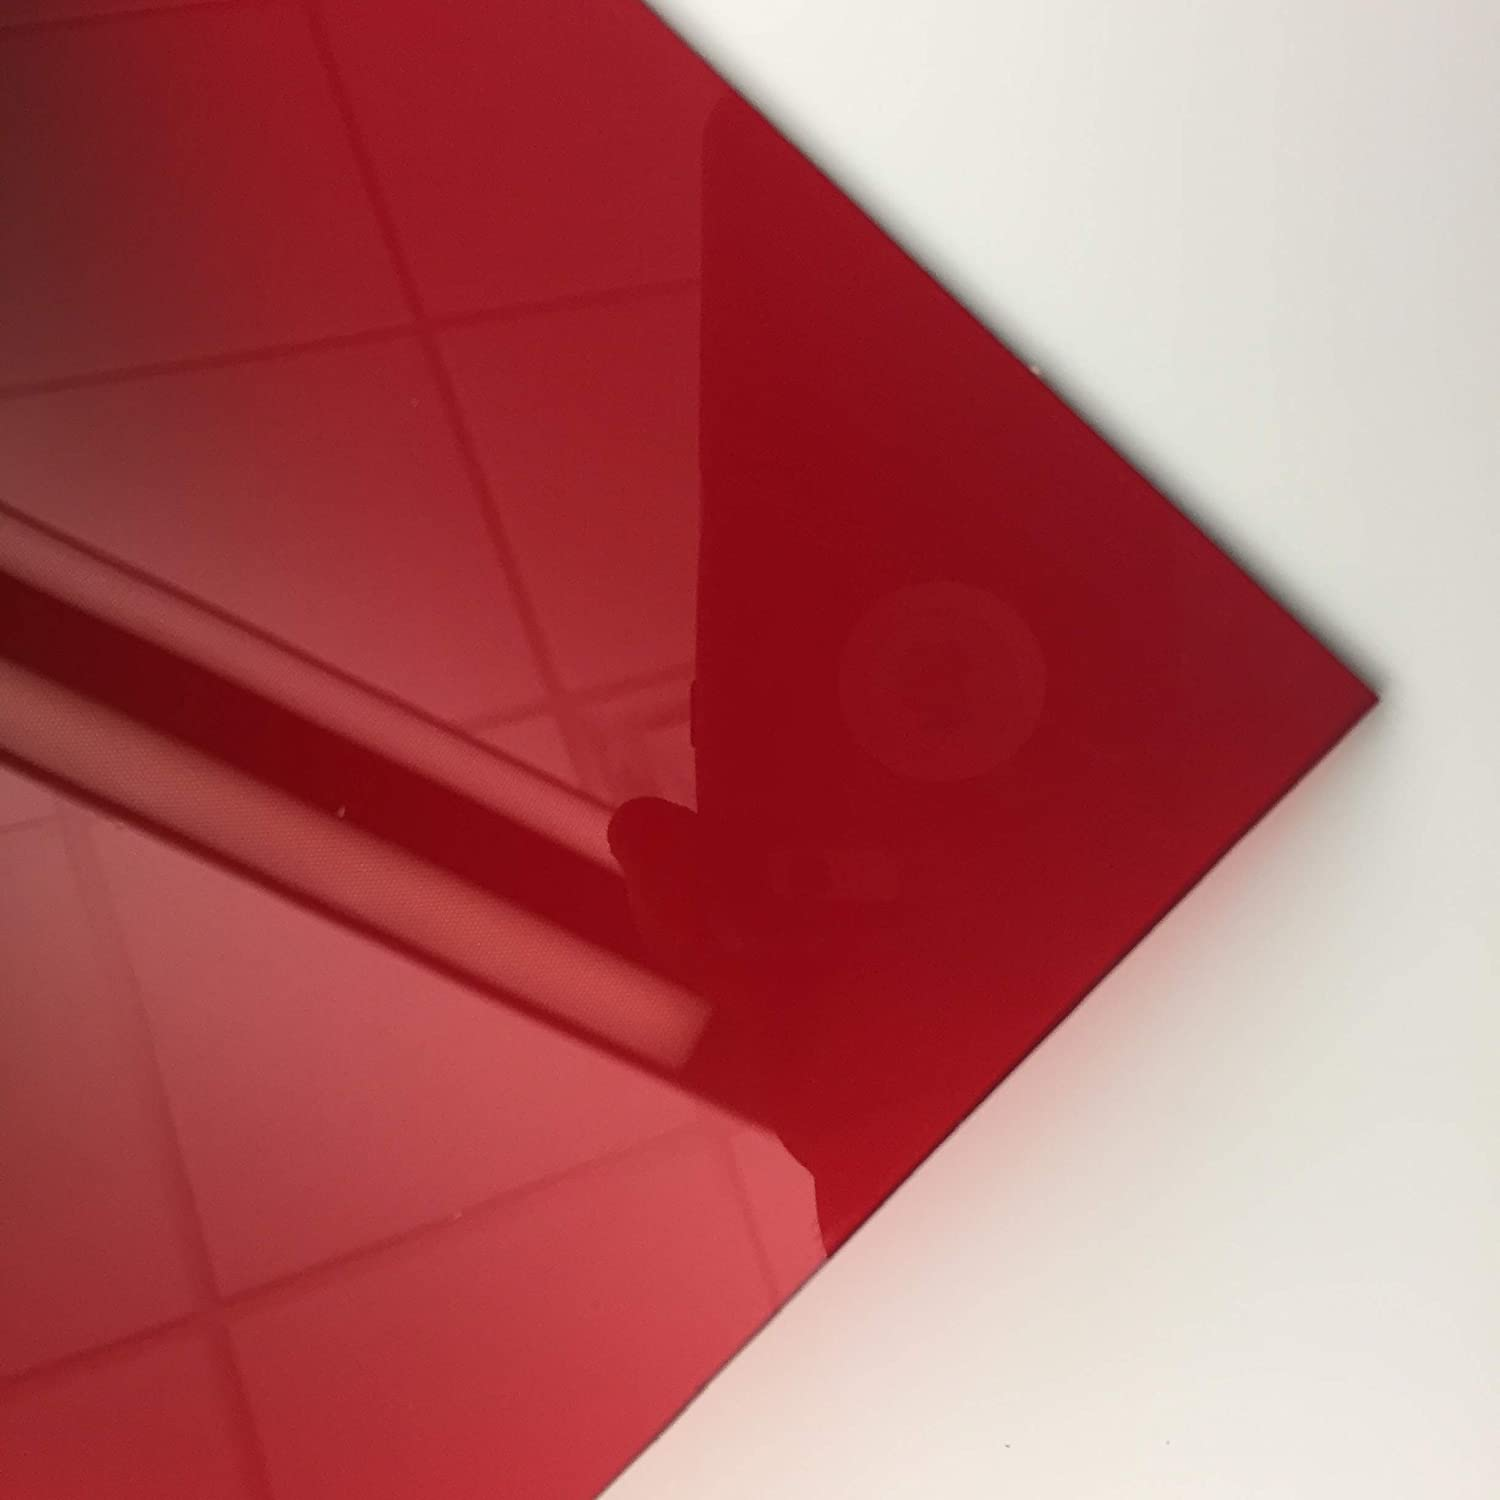 RED Acrylic Transparent # 2423-1//8 Thick Pick Your Size 12 X 12